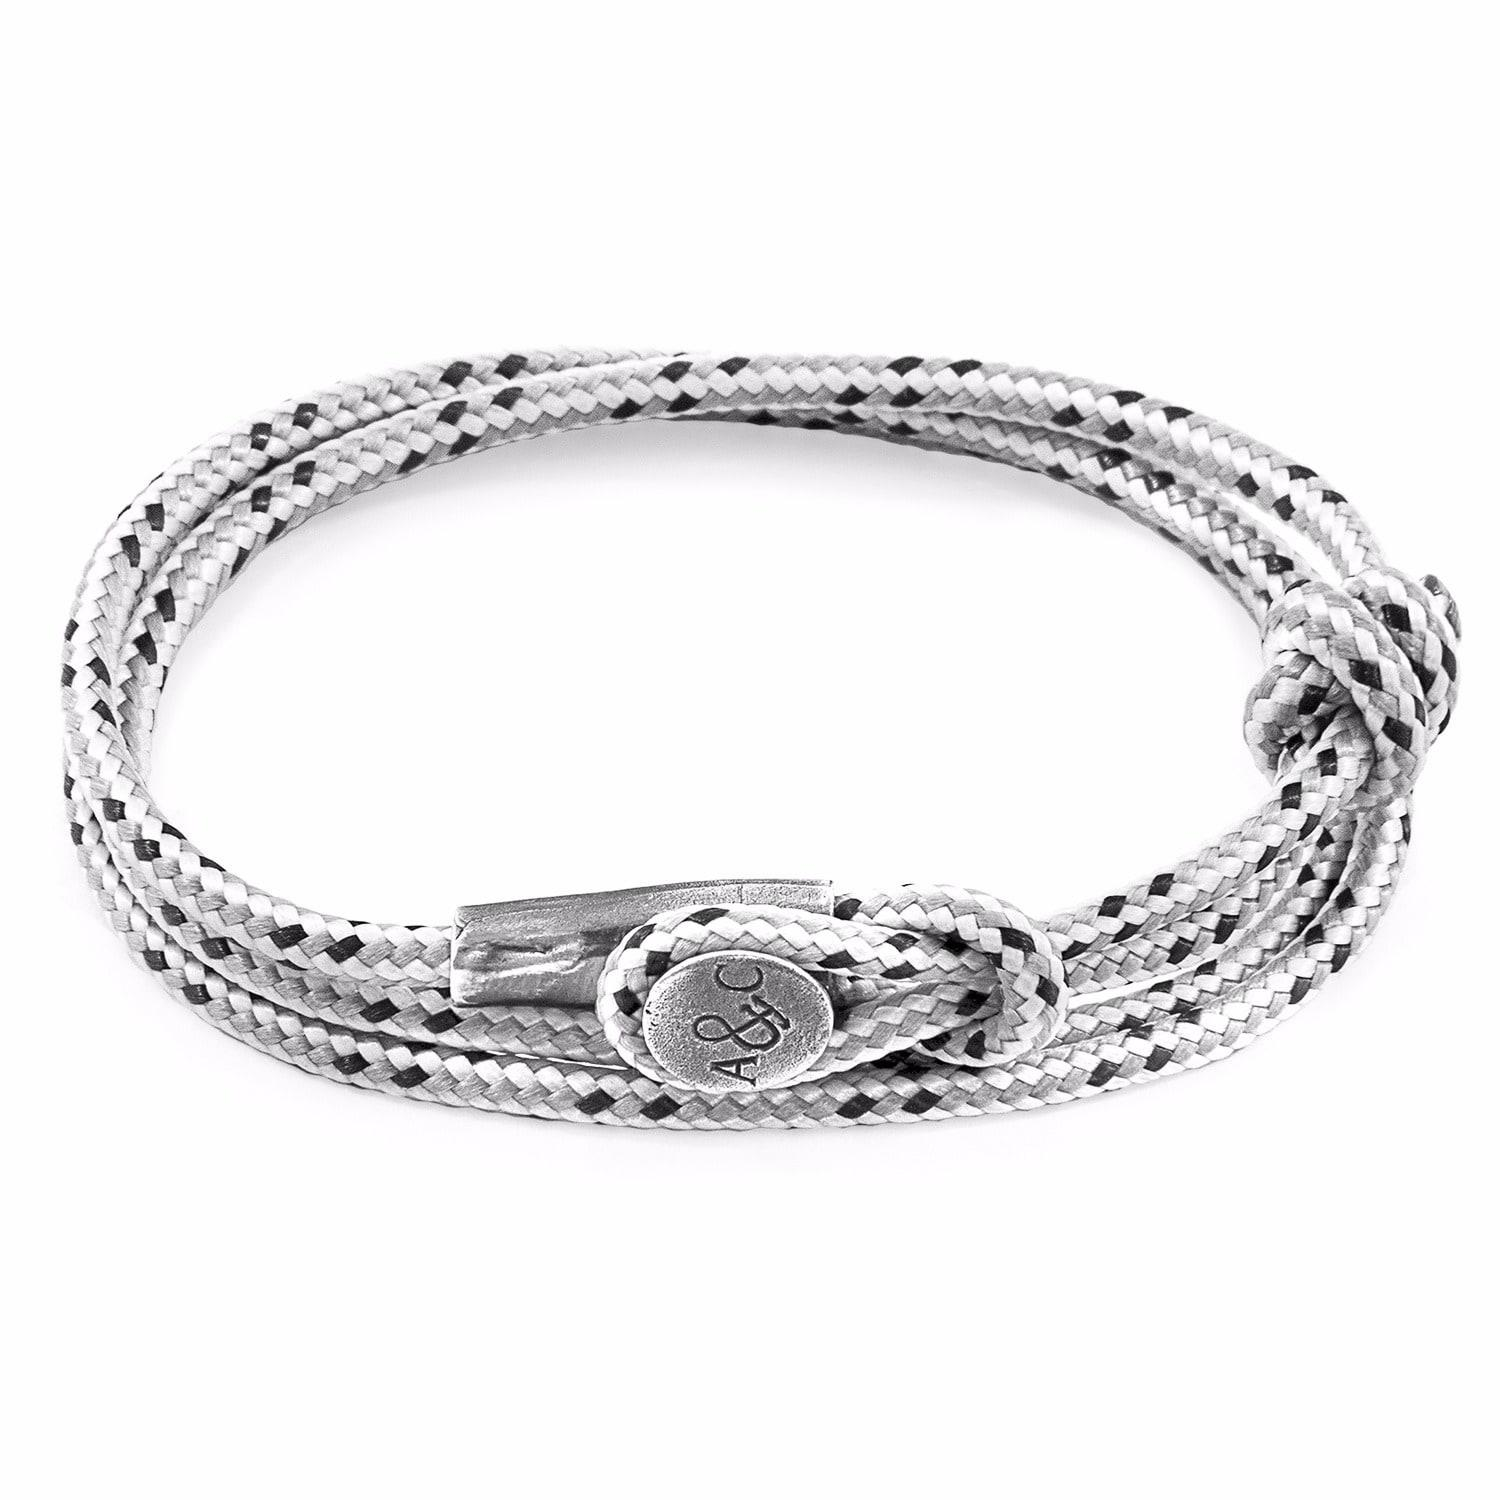 Anchor & Crew Black Dundee Silver and Rope Bracelet XKOCk